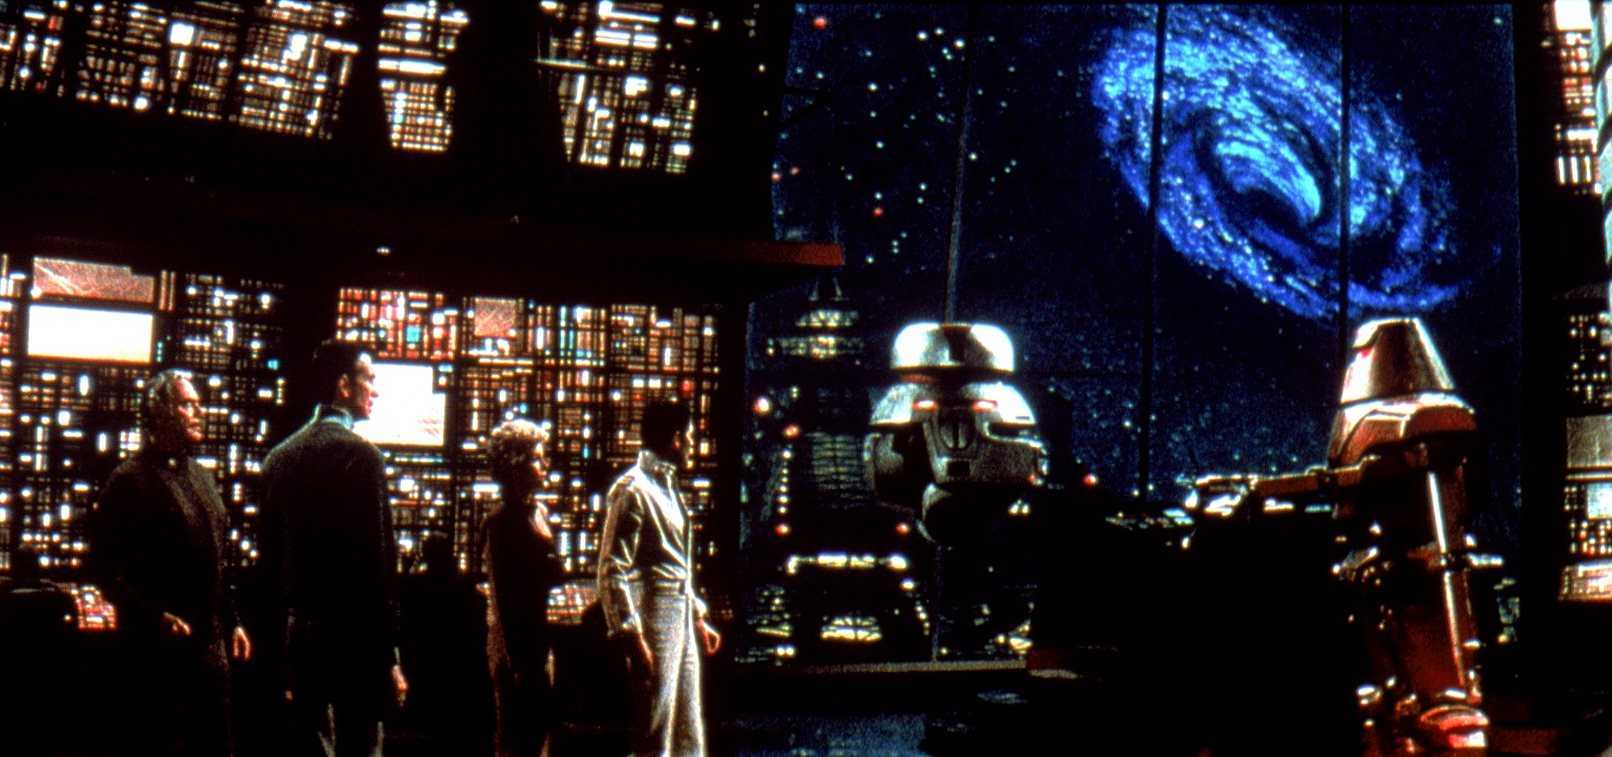 The Palomino crew - (l to r) Ernest Borgnine, Anthony Perkins, Yvette Mimieux and Joseph Bottoms along with the robots Vincent and Captain Star on the bridge of the Cygnus looking out at The Black Hole (1979)